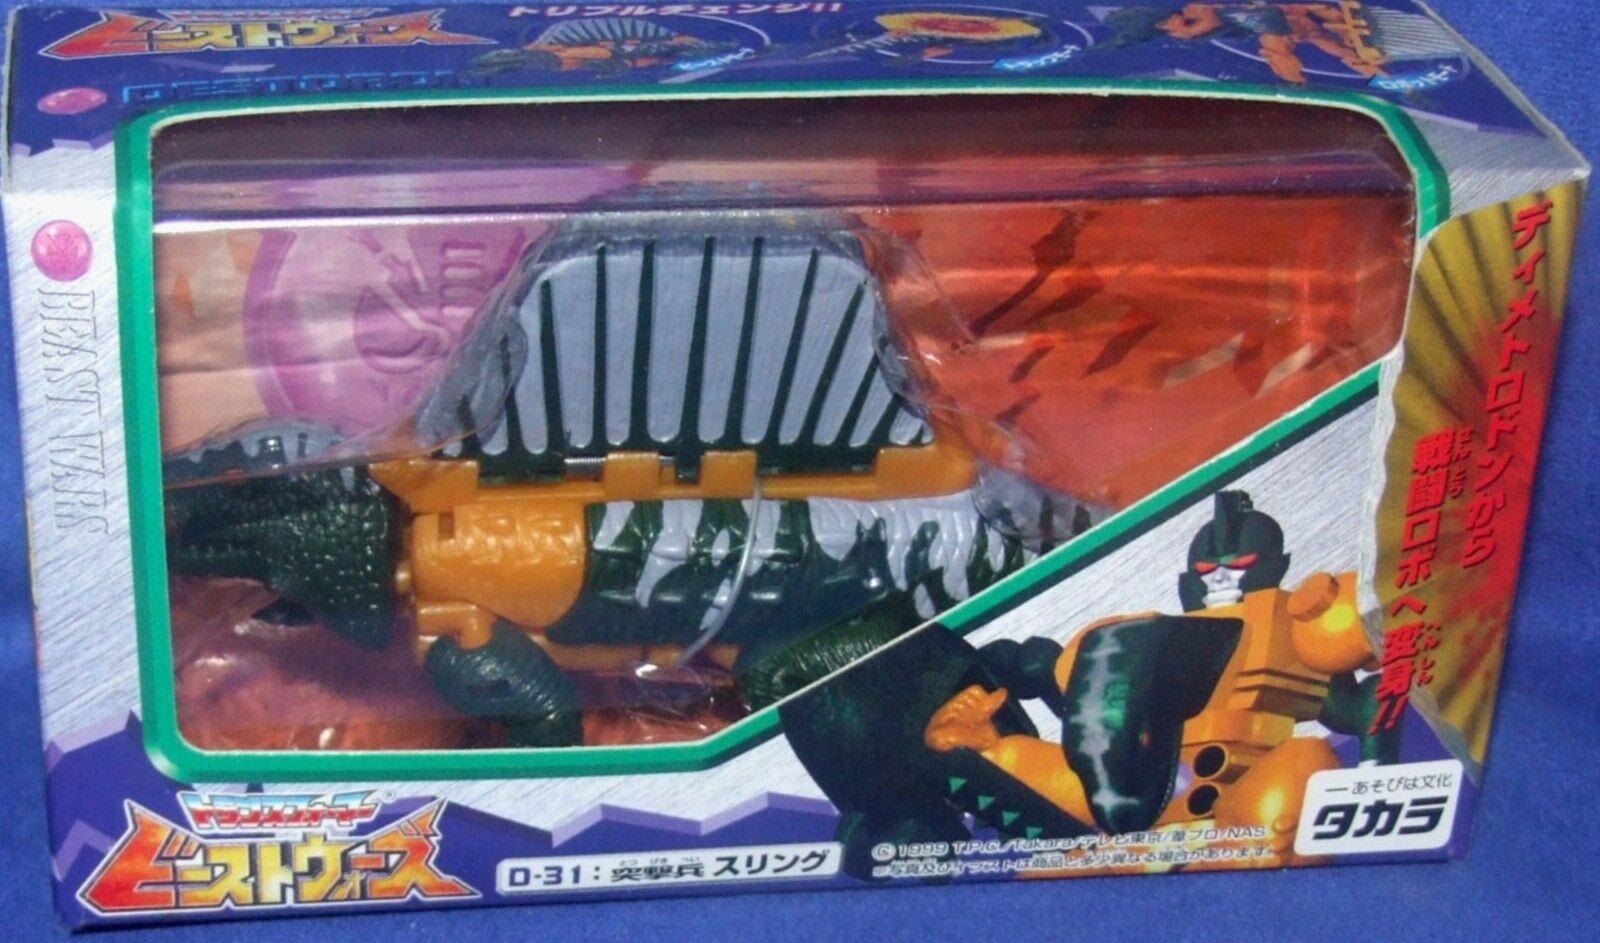 Transformers Destron D-31 Sling New Japanese Takara Dimetrodon Factory Sealed